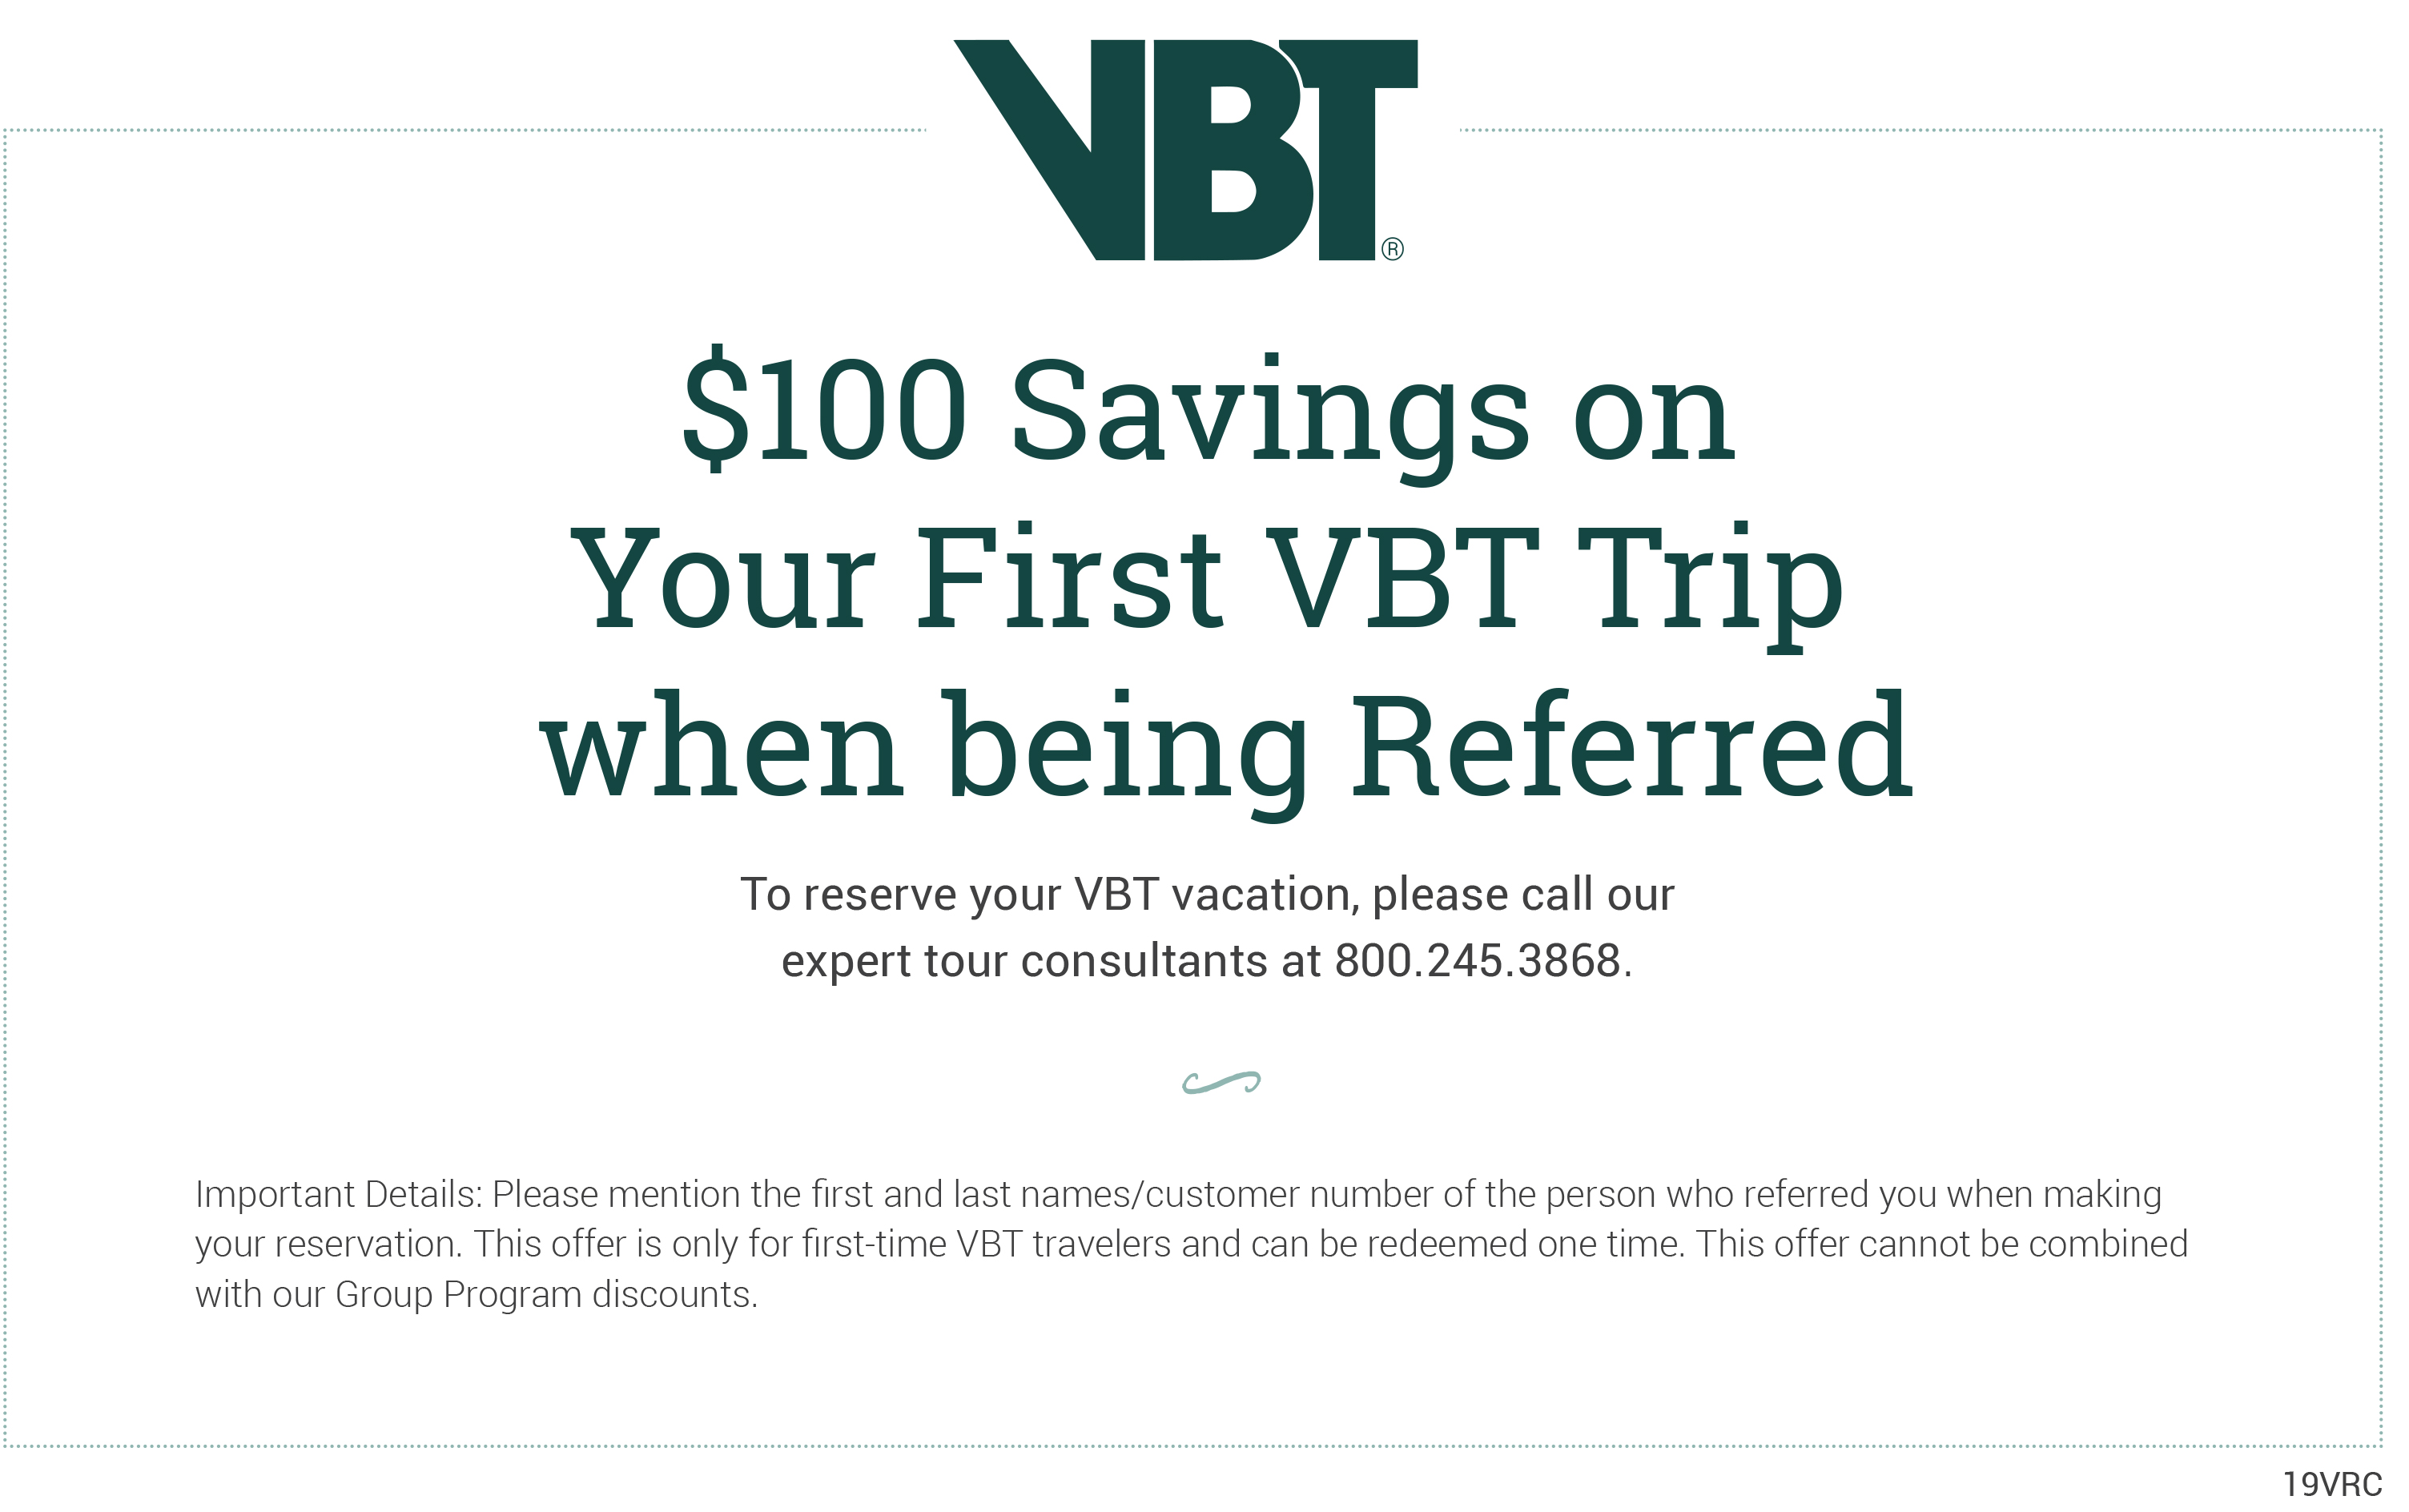 Share Travel Thank You | VBT Bicycling Vacations